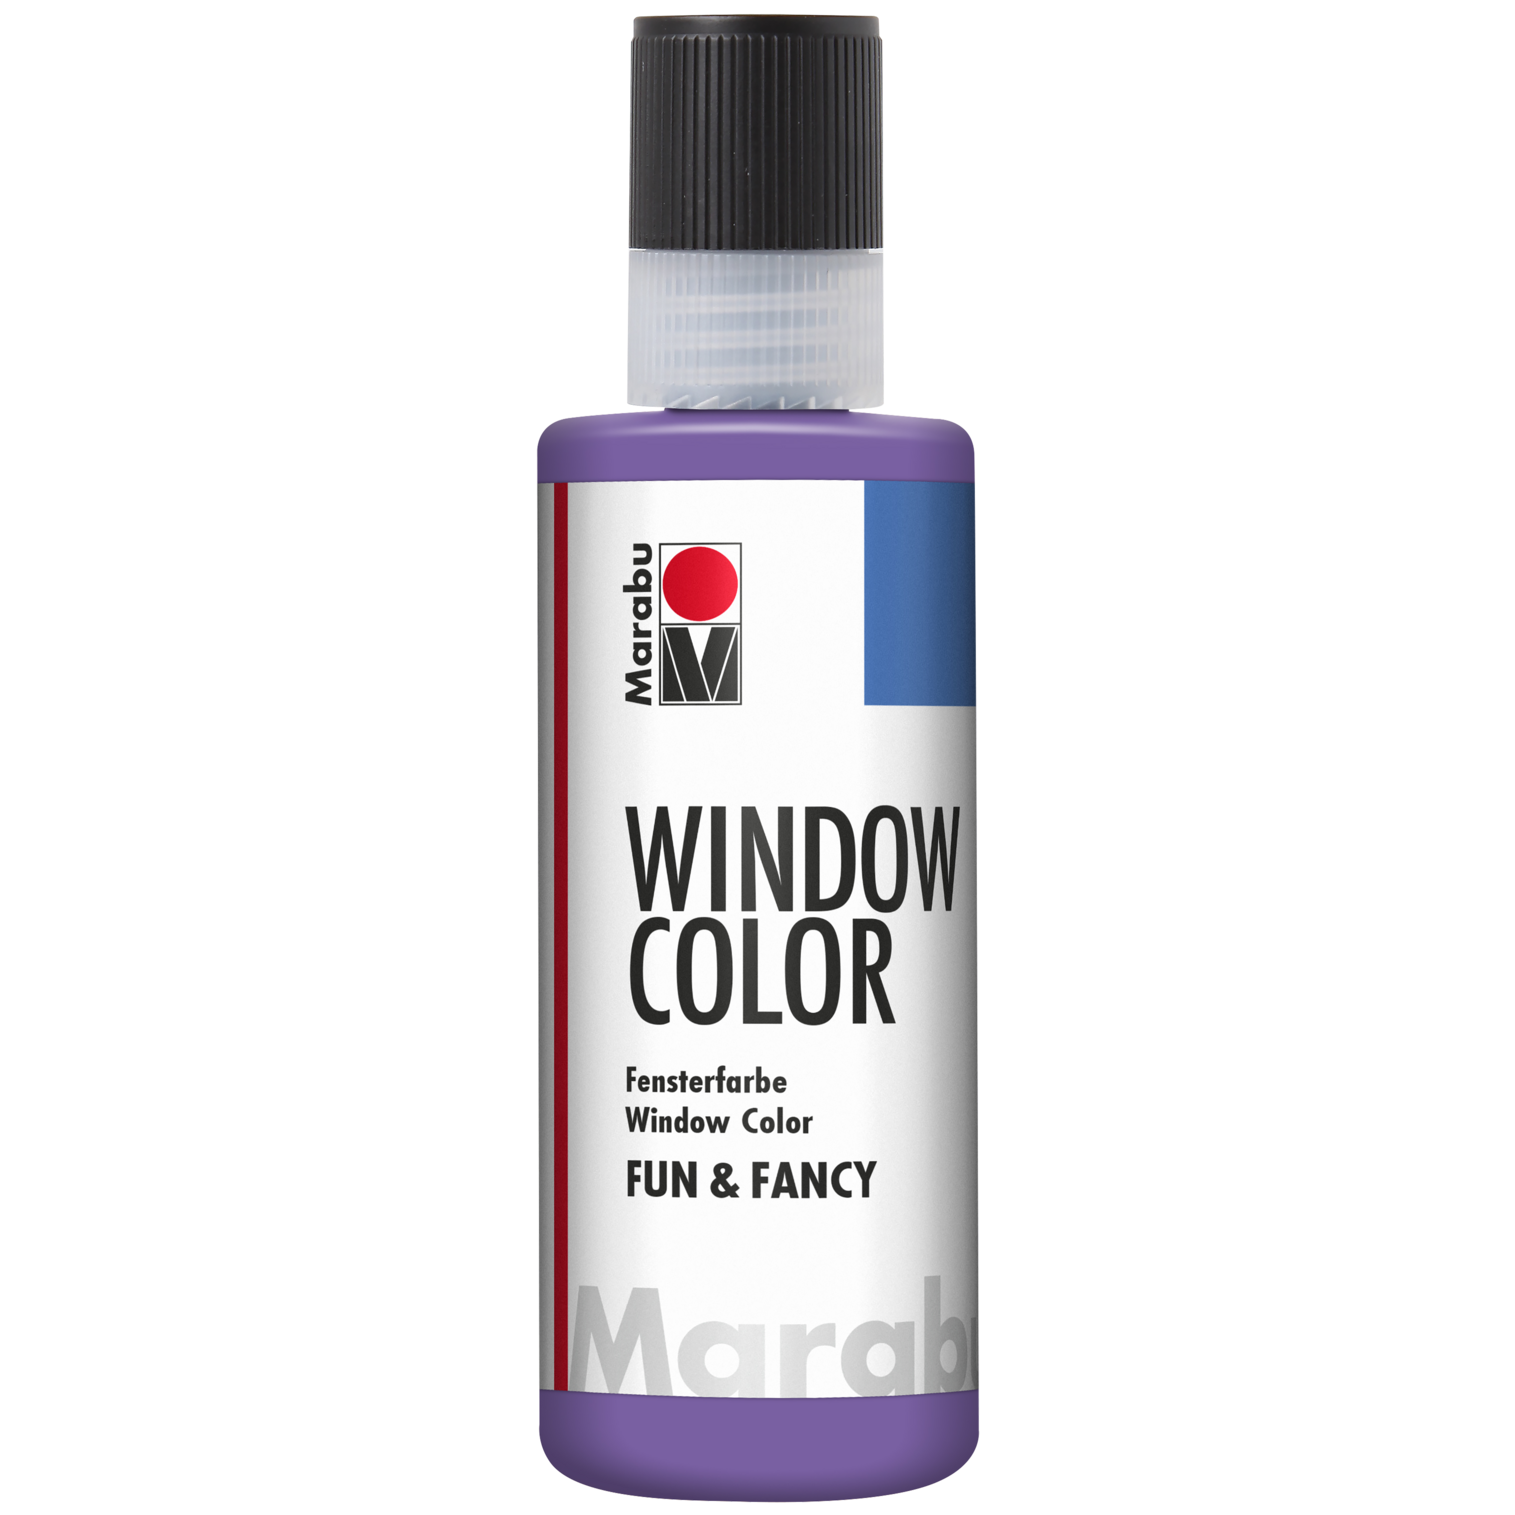 Marabu Window Color fun & fancy, Violett 251, 80 ml